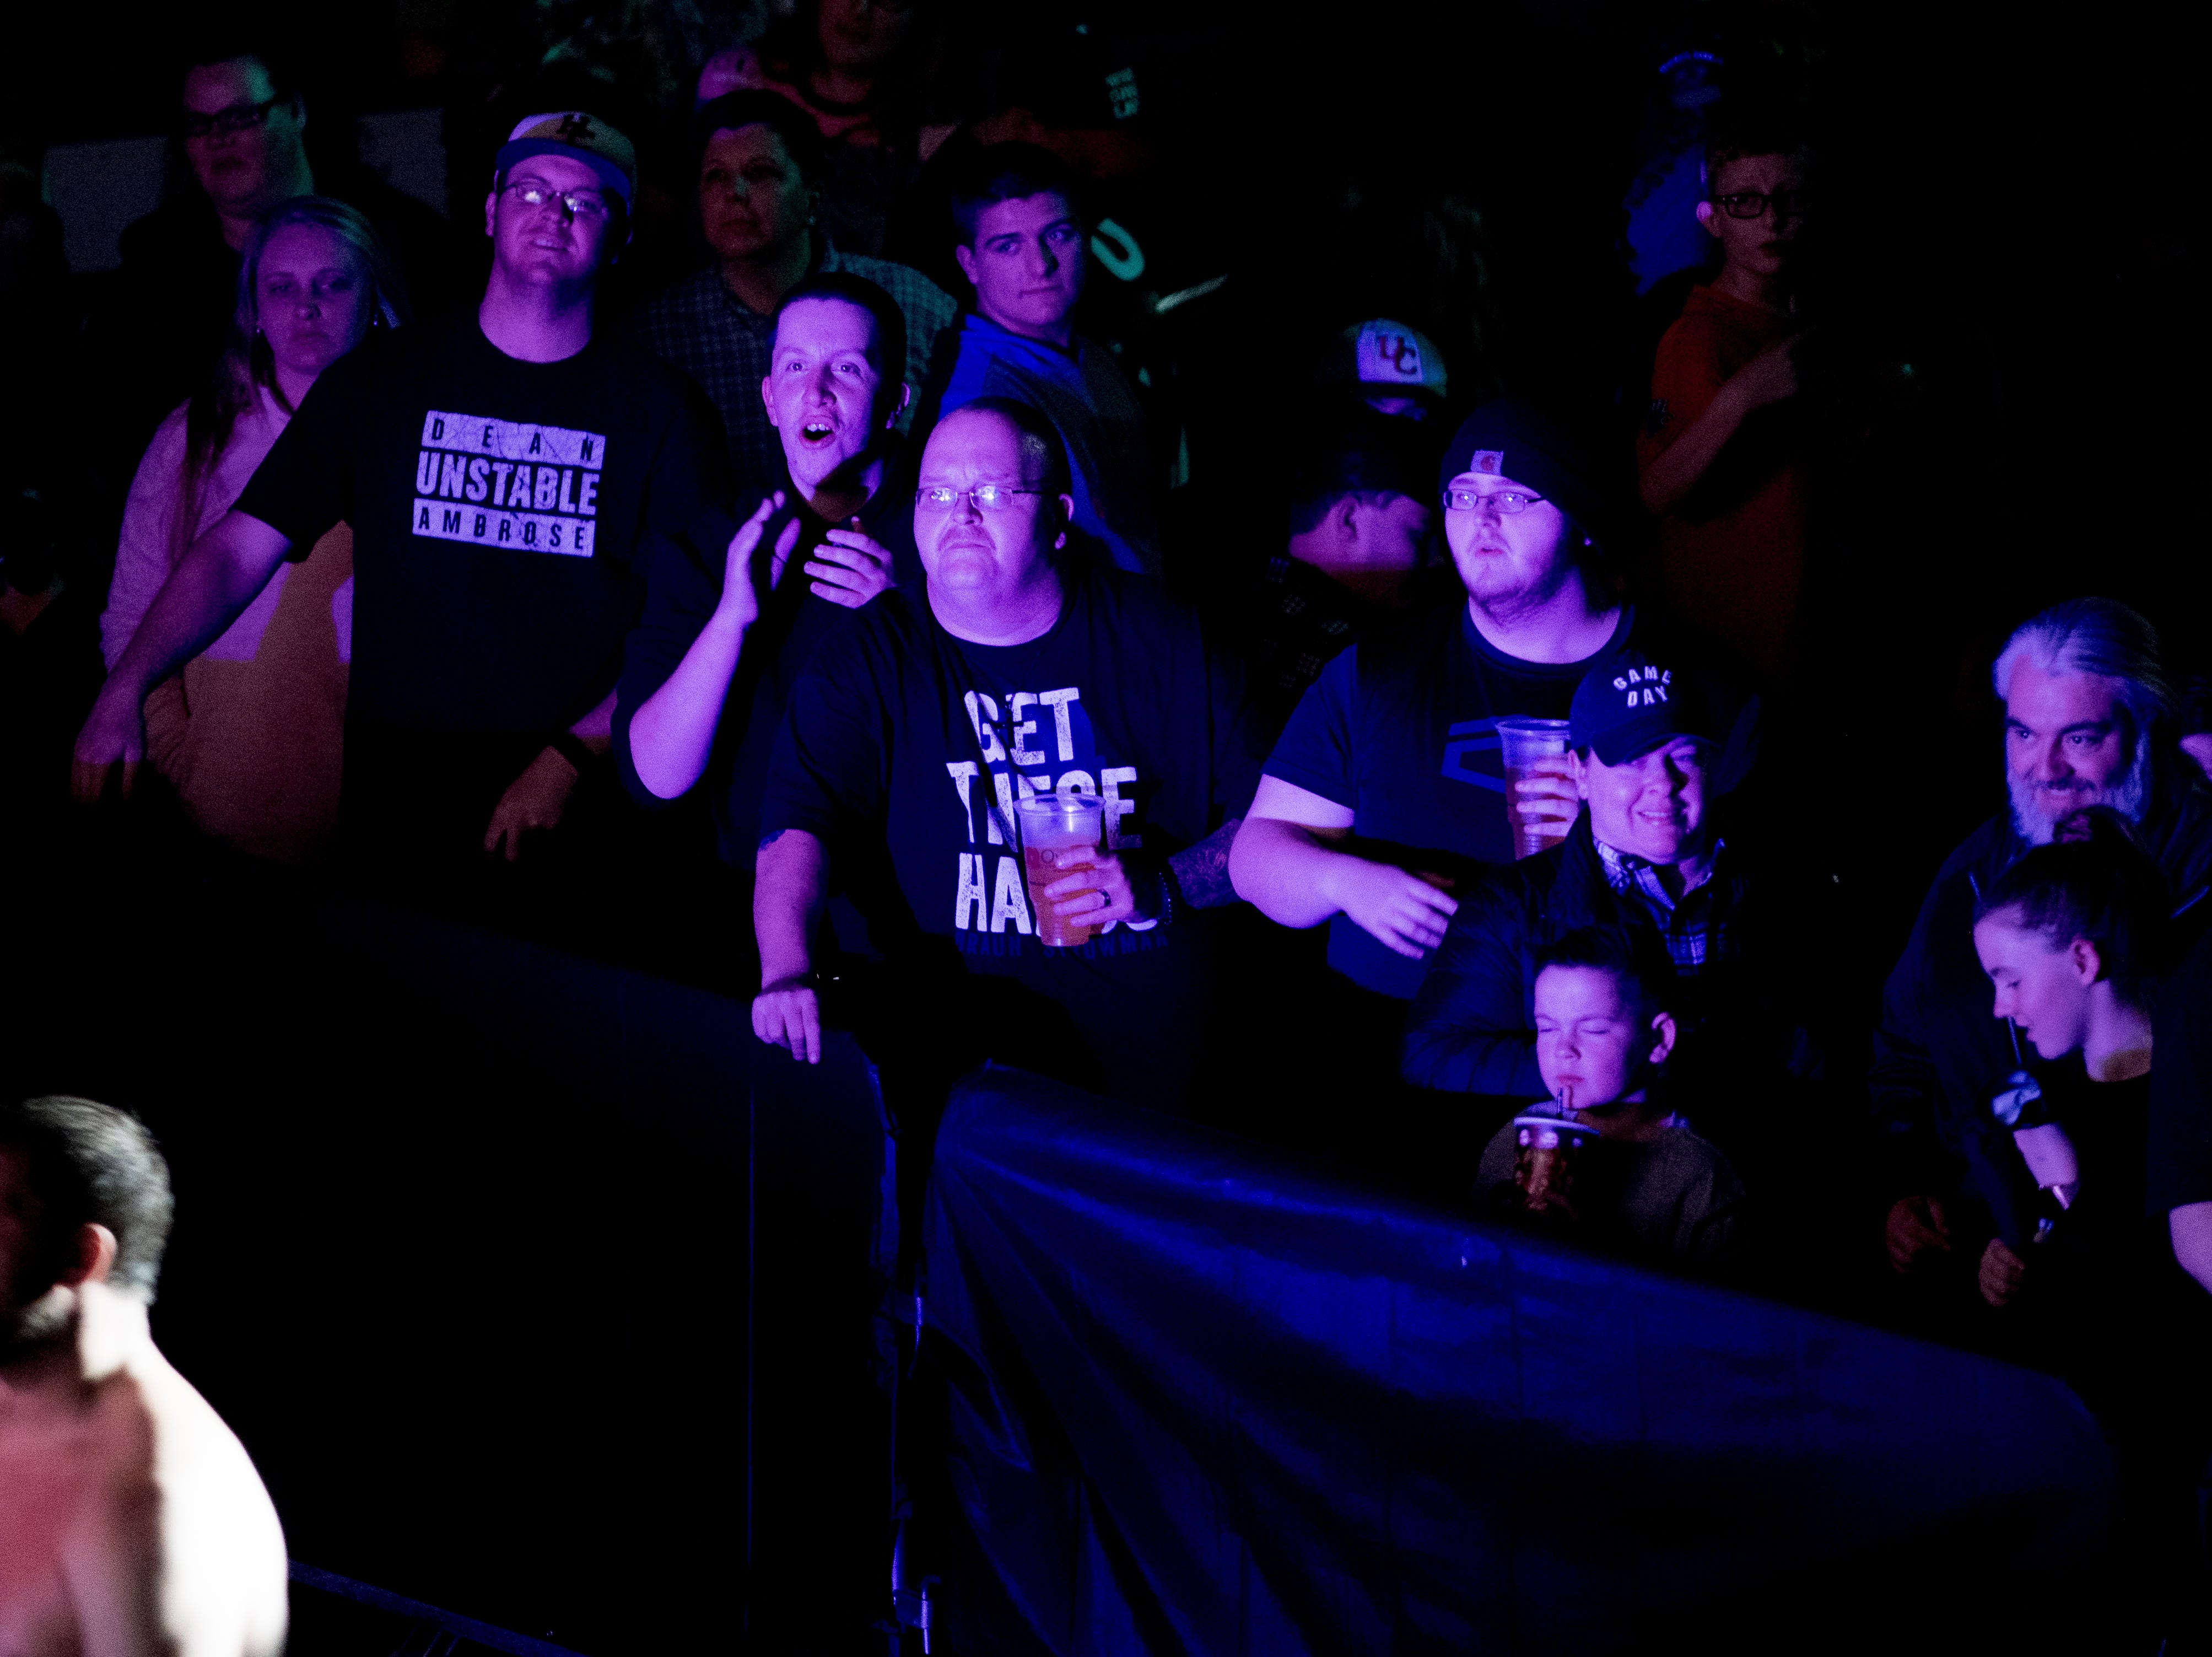 Fans watch from their seats during a WWE Live performance at the Knoxville Civic Coliseum in Knoxville, Tennessee on Saturday, January 12, 2019. *KNOXVILLE NEWS SENTINEL USE ONLY*